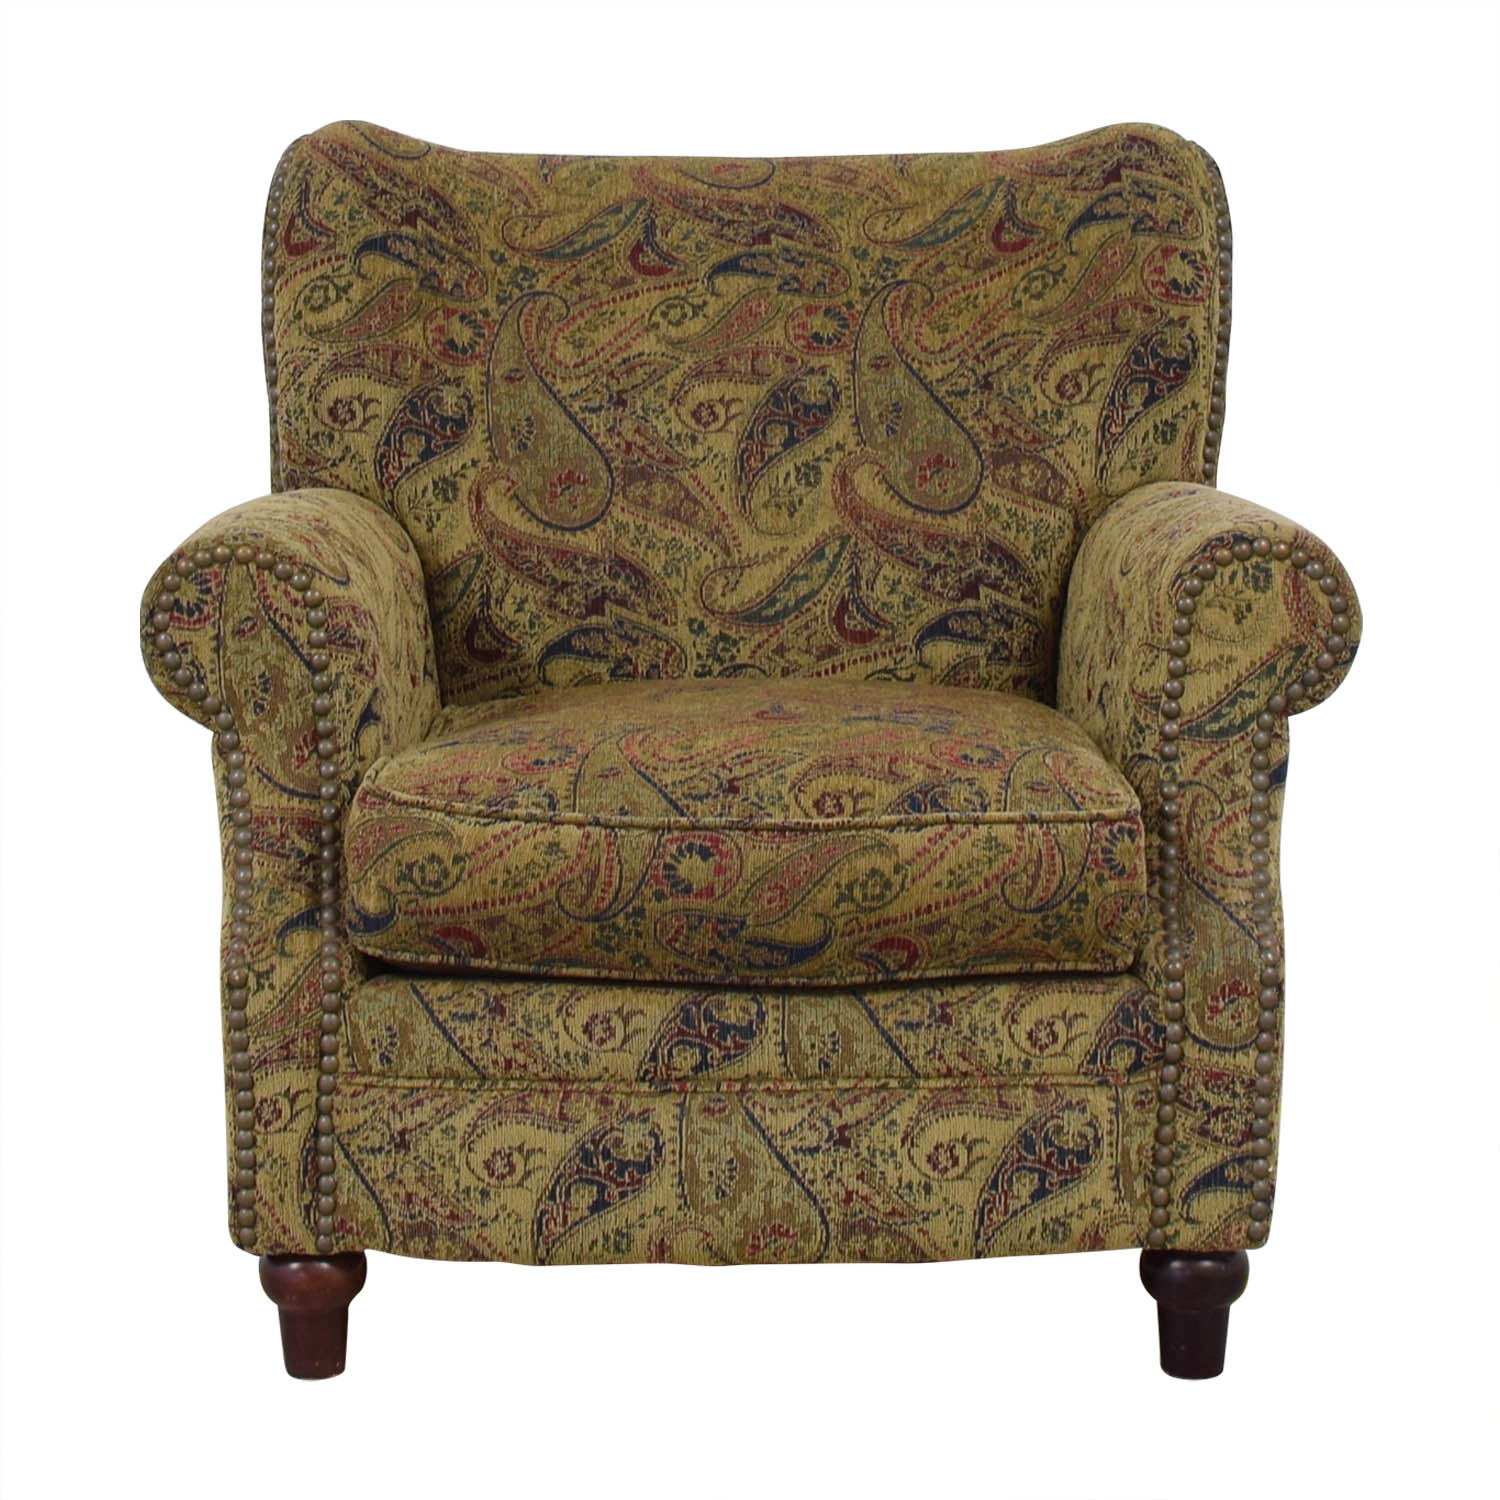 Rowe Furniture Nailhead Paisley Accent Chair / Chairs